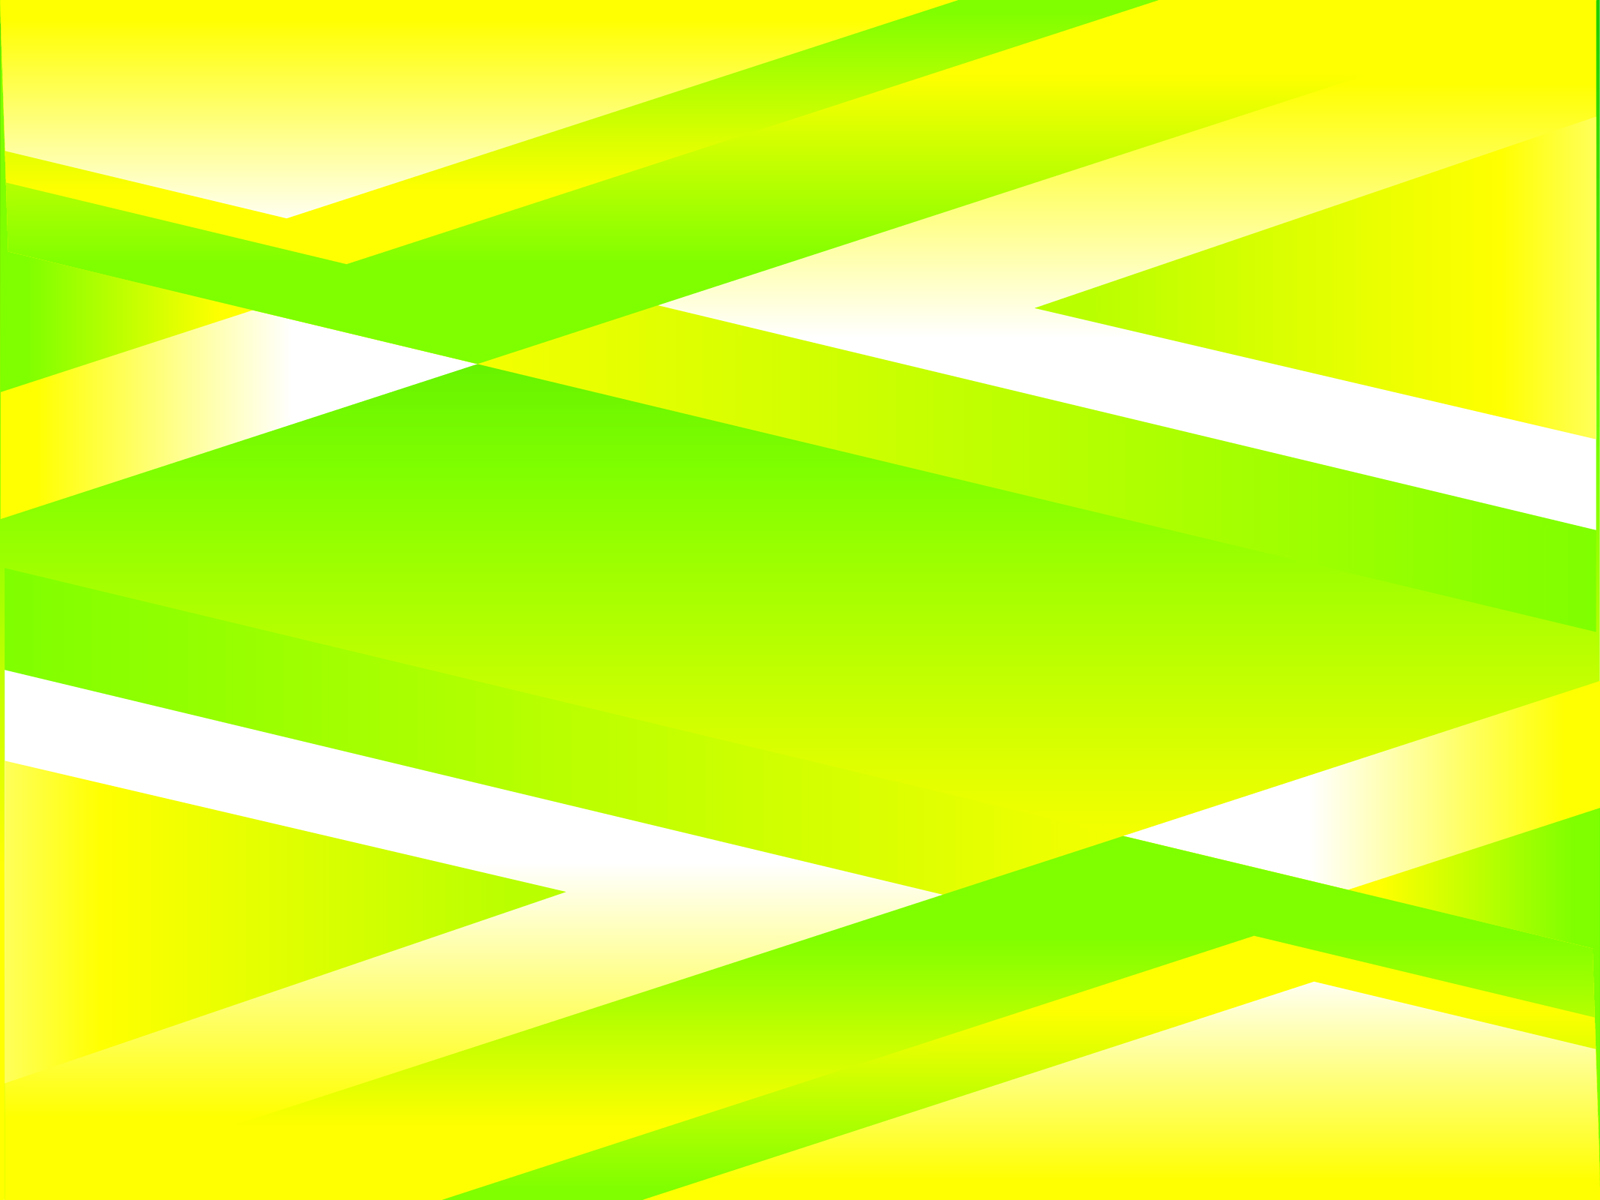 Yellow Backgrounds PSD Designs